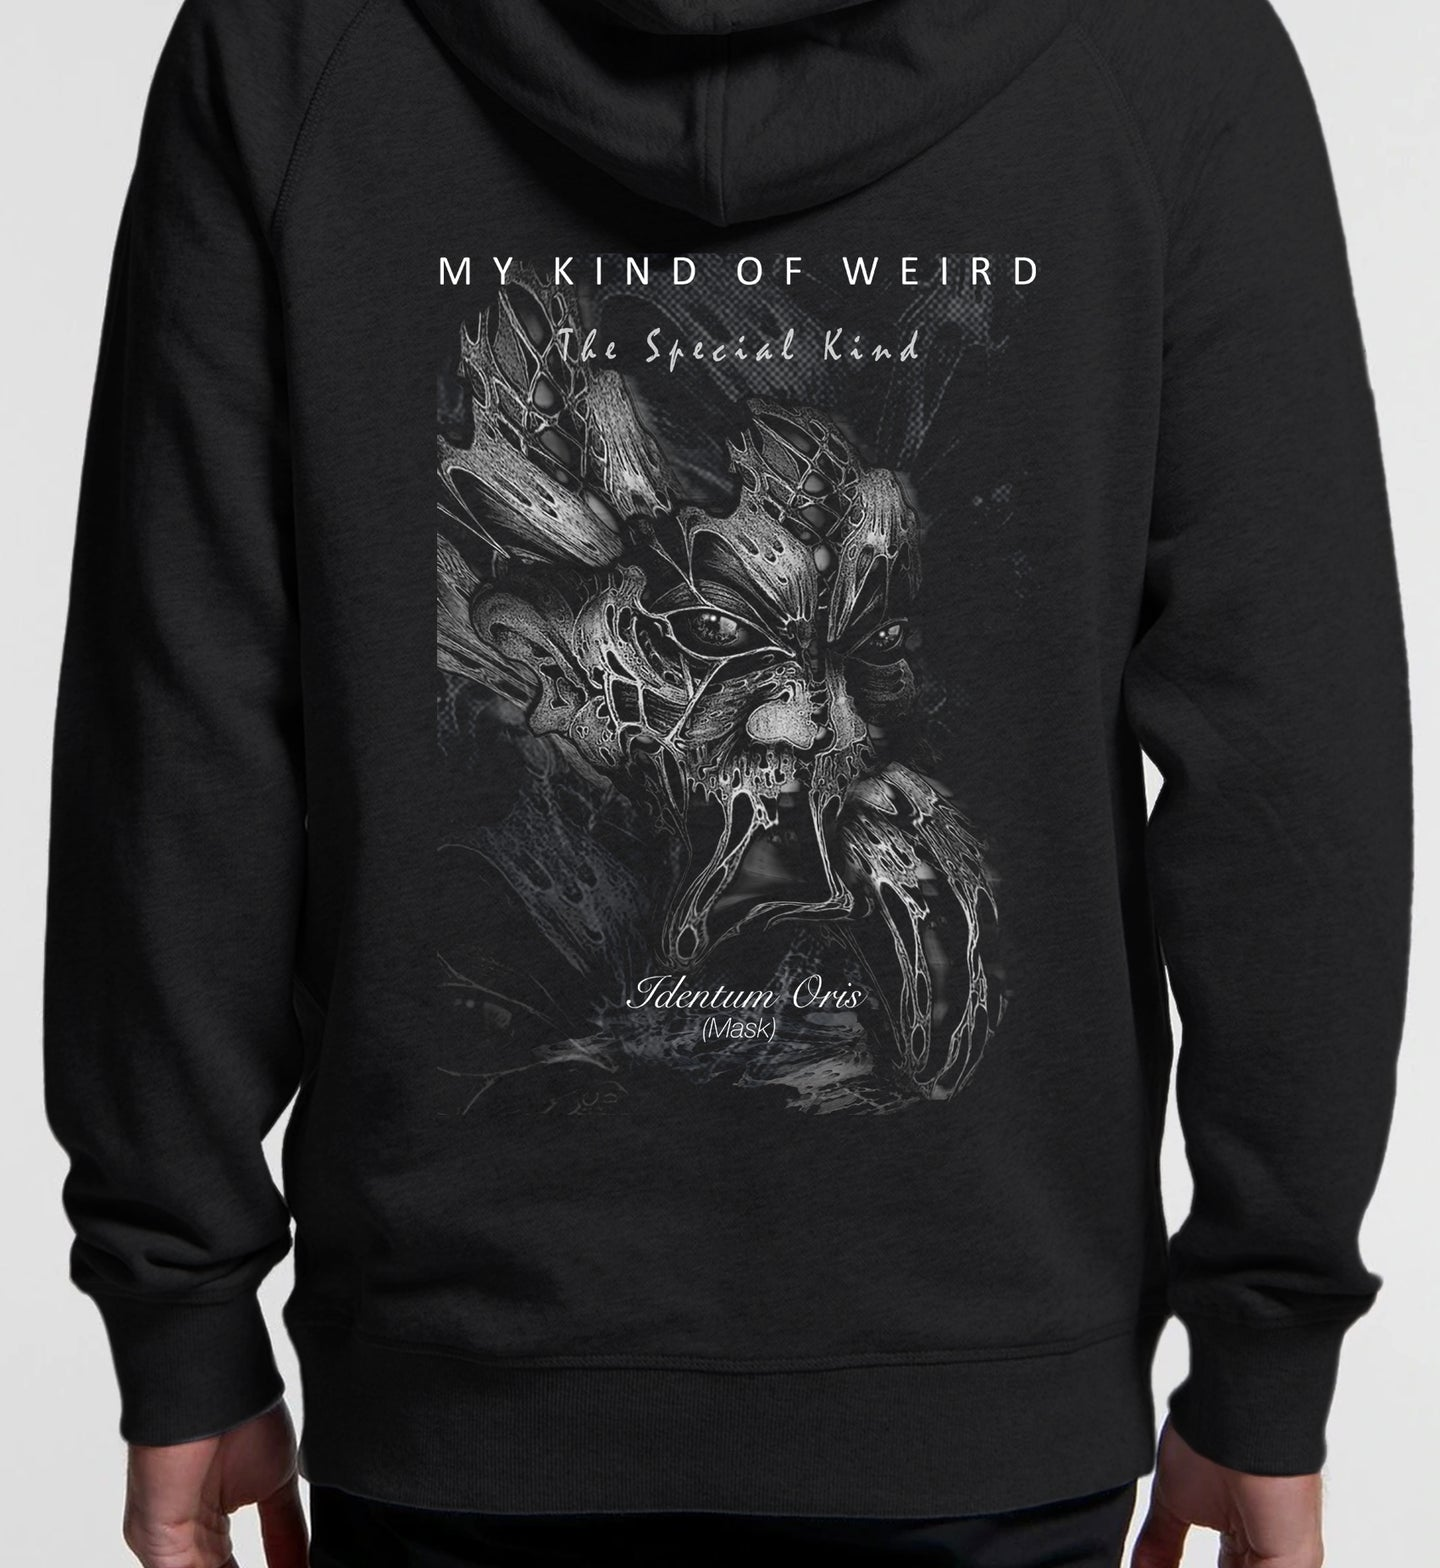 MY KIND OF WEIRD - SKIN MASK - Kids & Youth Hoodie